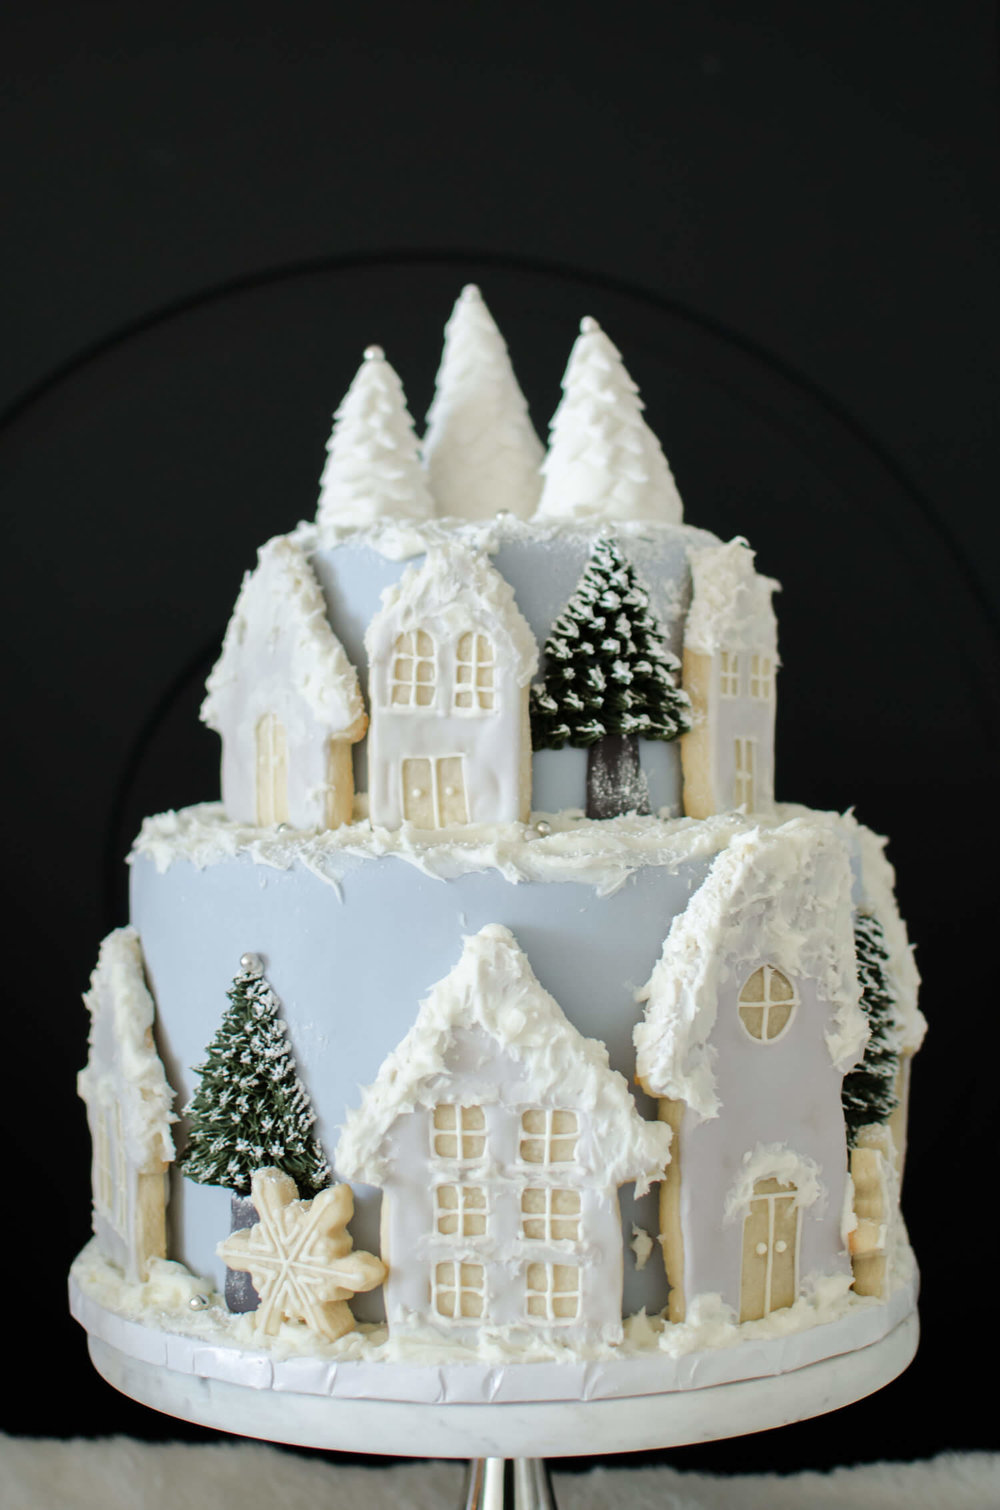 winter bridal shower cake idea with a snowy village scene created with frosted cookies and trees